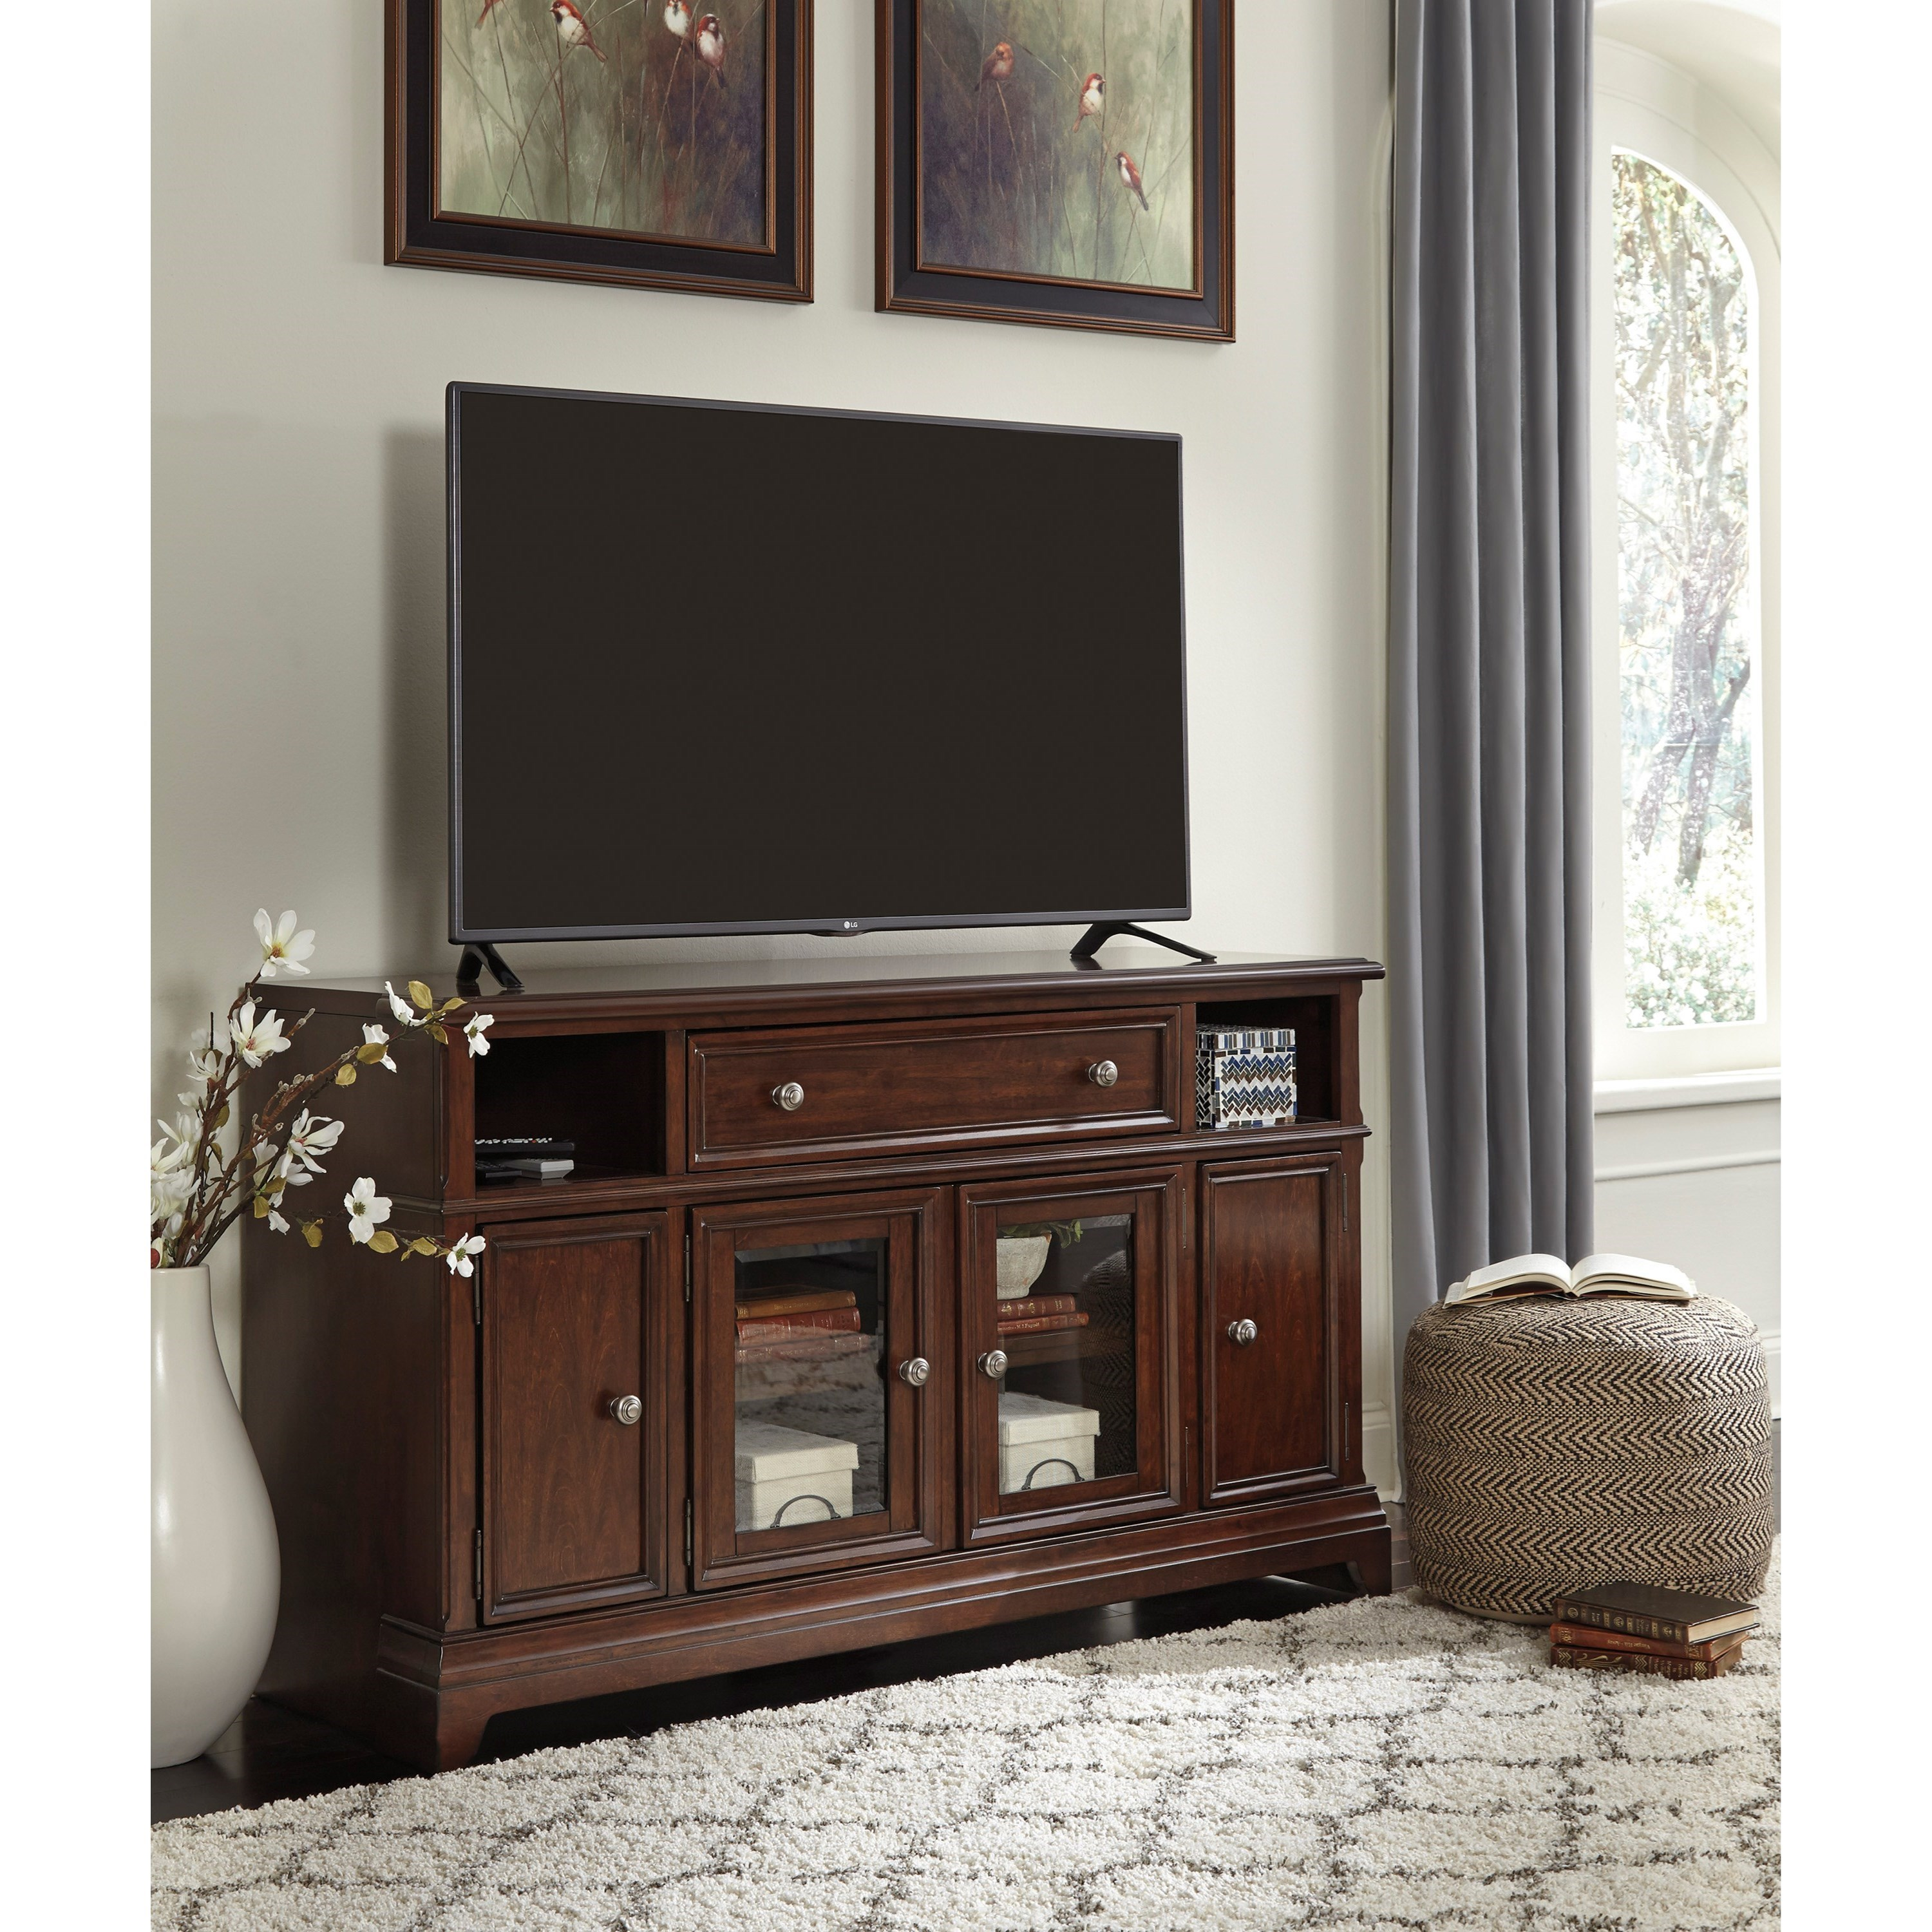 Signature Design by Ashley Lavidor Large TV Stand with Drop Down Door - Royal Furniture - TV Stands